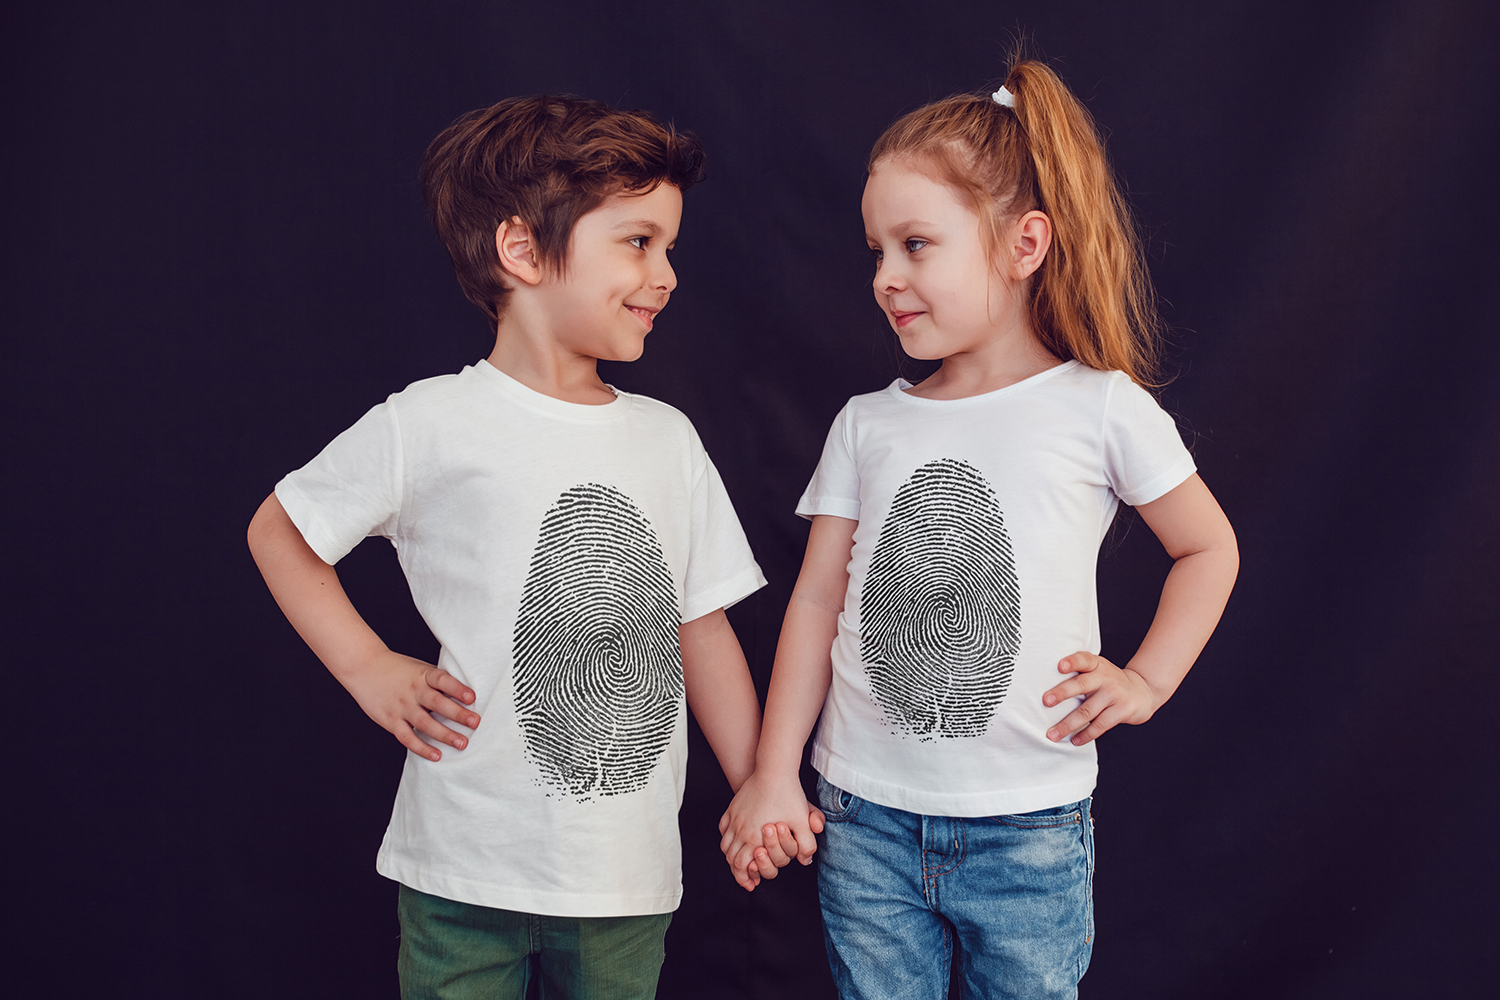 Kids T-Shirt Mock-Up Vol.3 2017 example image 6